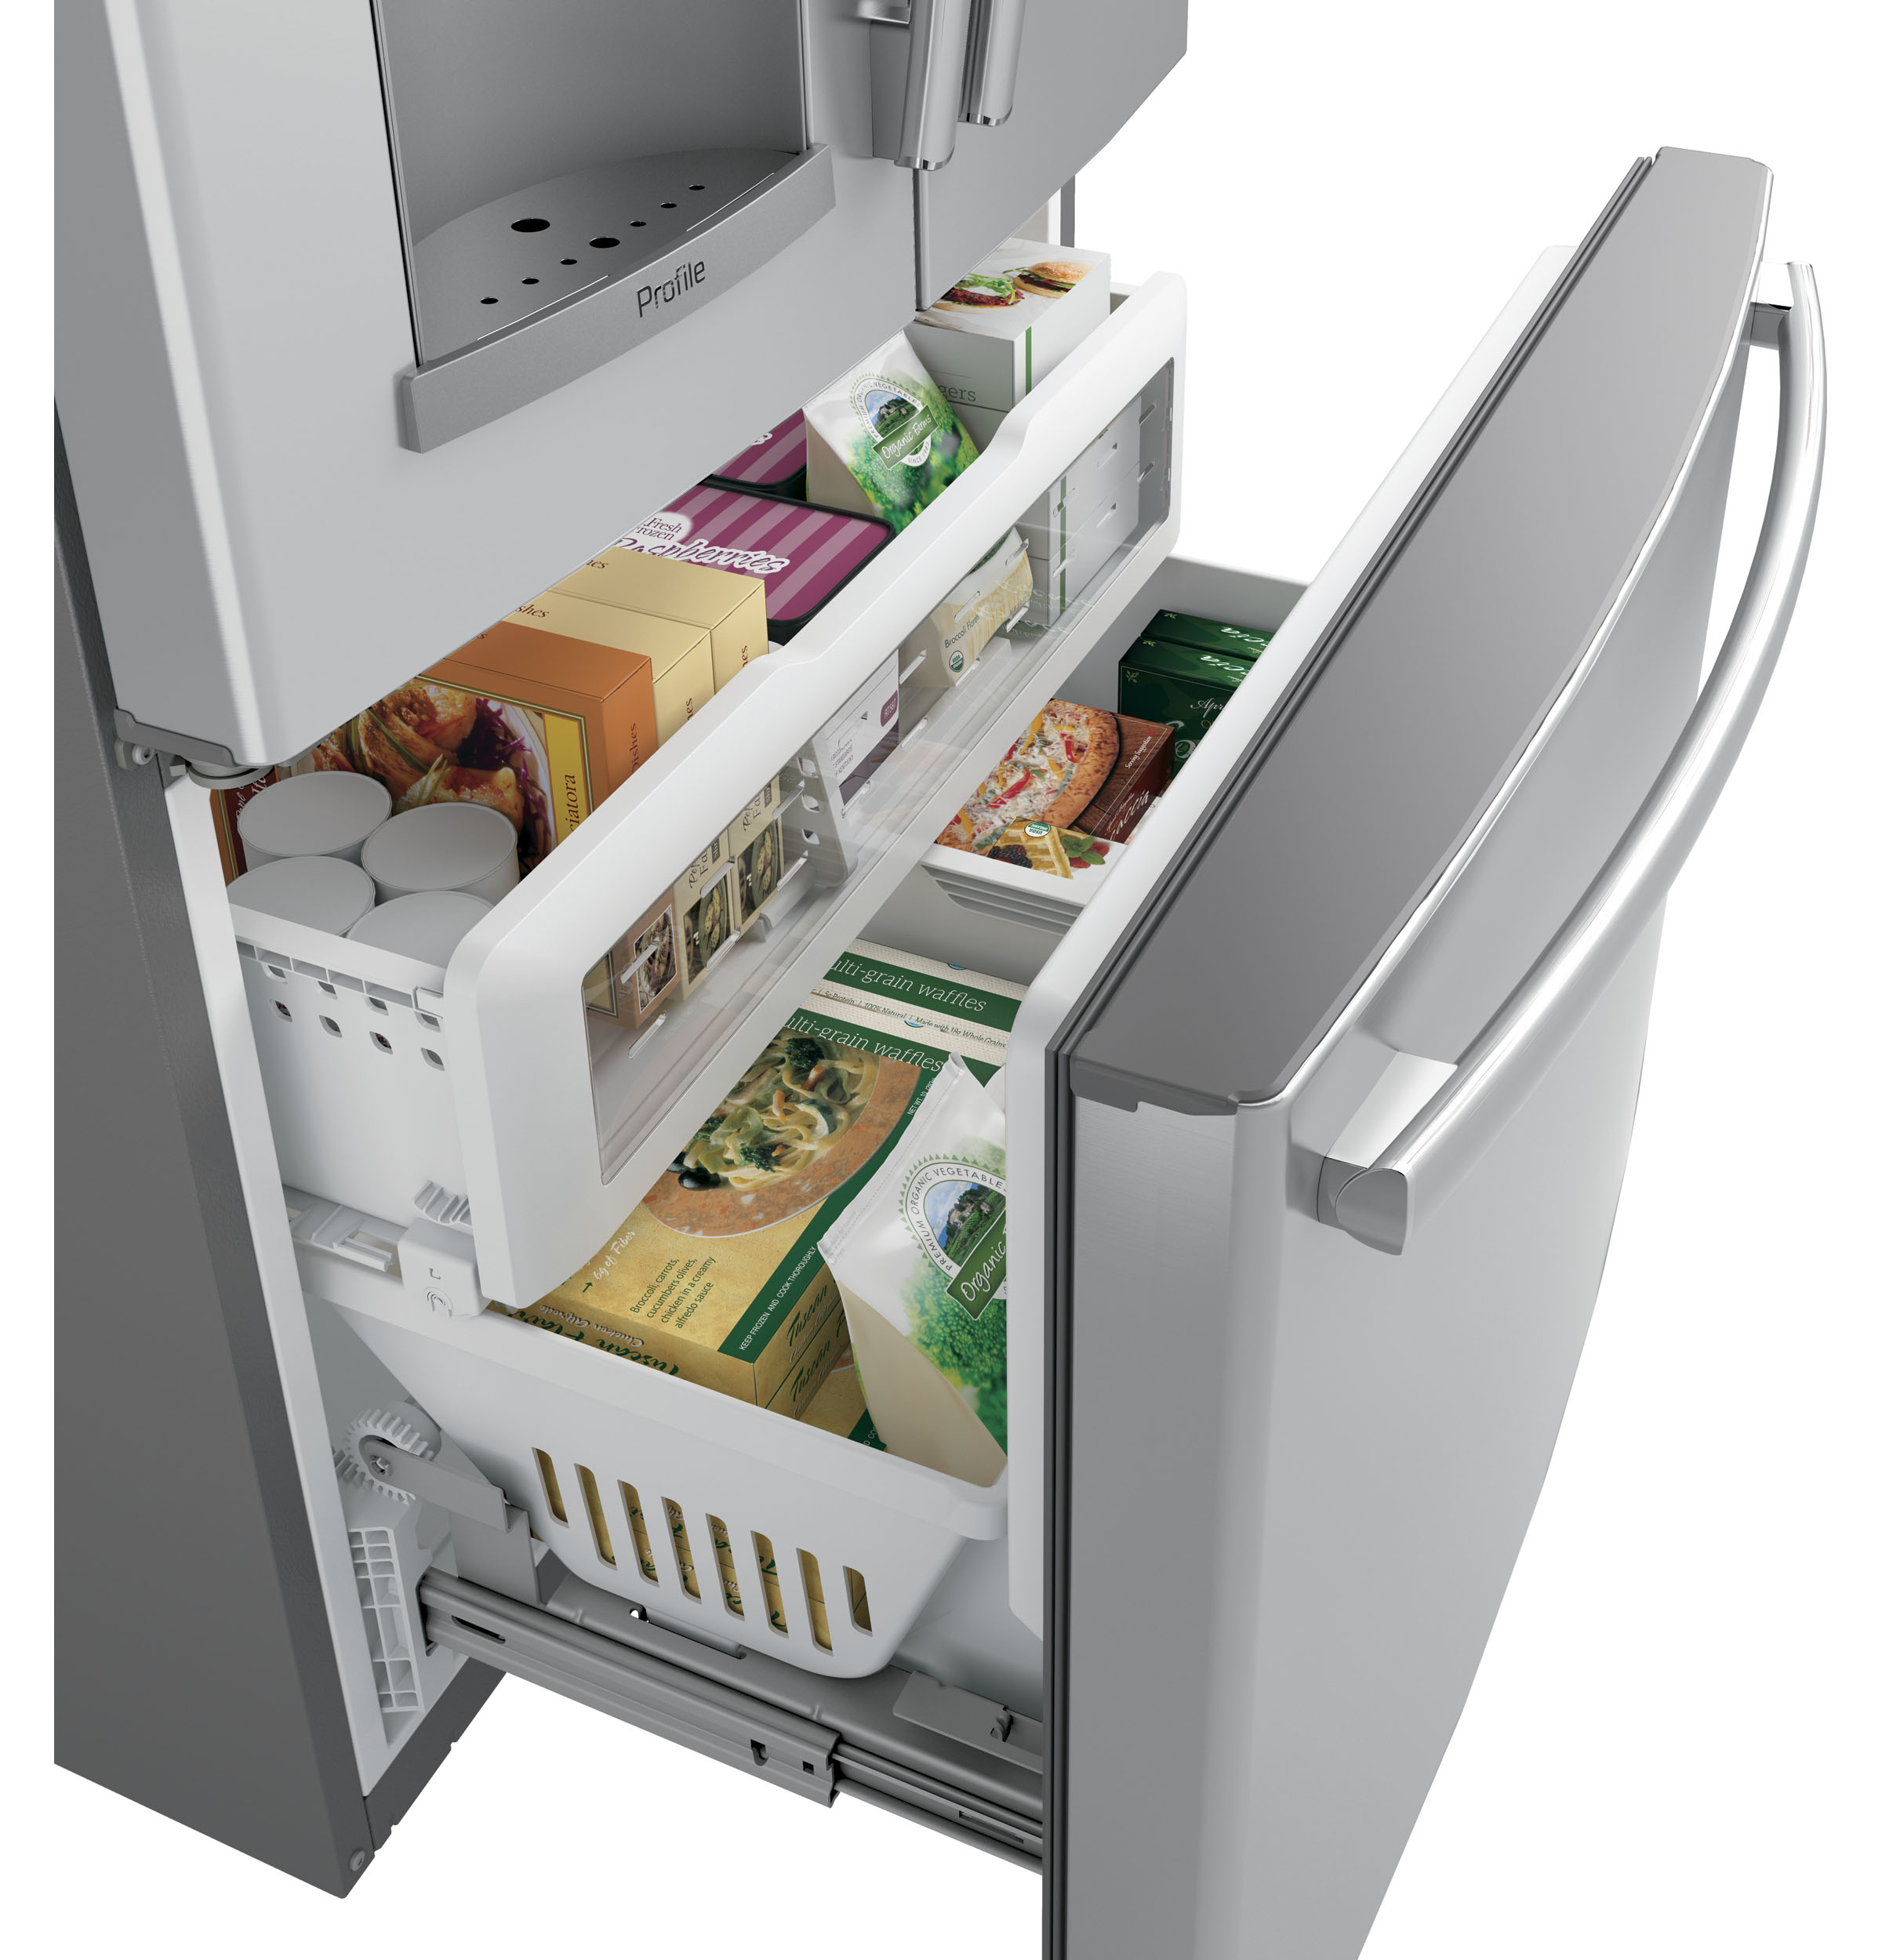 Model: PYE22KSKSS | GE Profile™ Series ENERGY STAR® 22.2 Cu. Ft. Counter-Depth French-Door Refrigerator with Hands-Free AutoFill